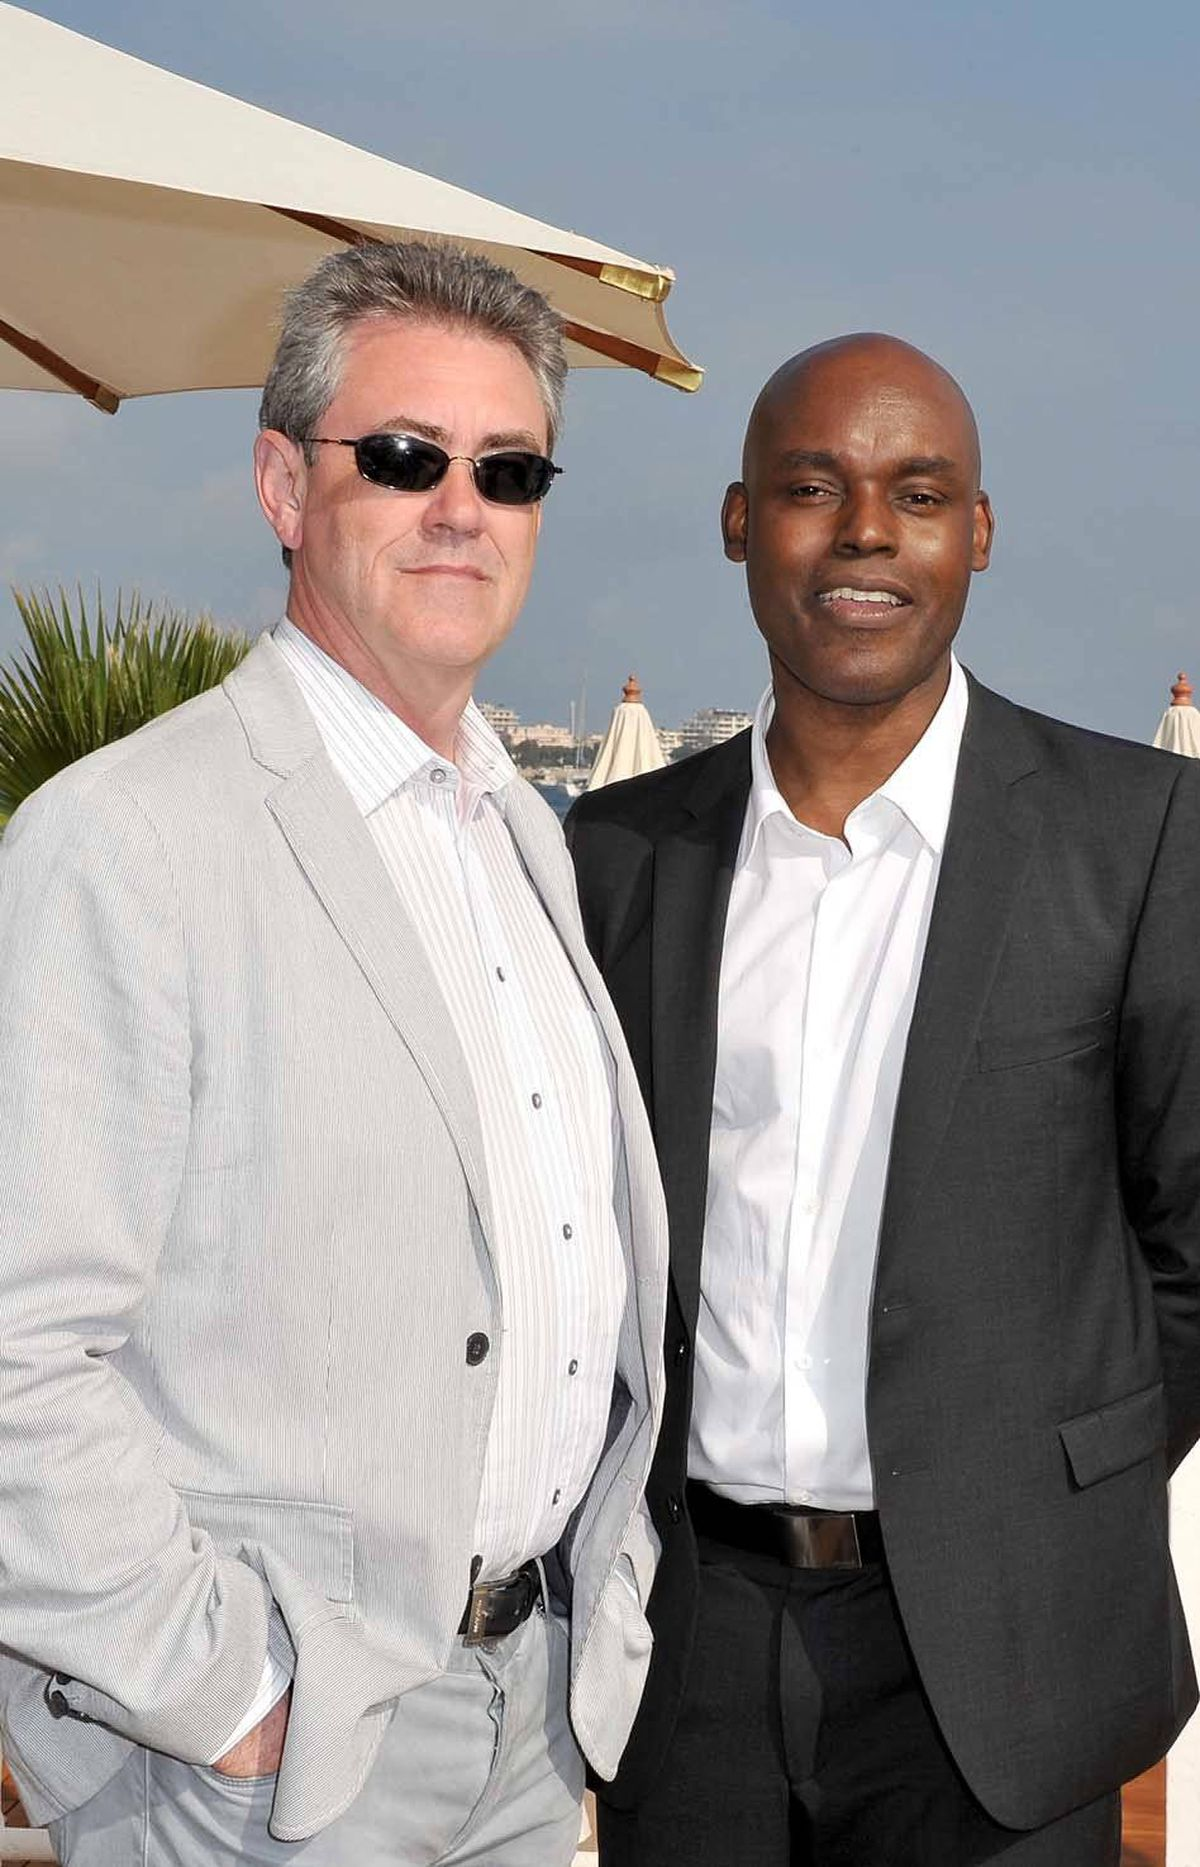 Piers Handling (left), CEO of the Toronto International Film Festival (TIFF), and TIFF director Cameron Bailey attend the TIFF party at the Cannes Film Festival on Friday.